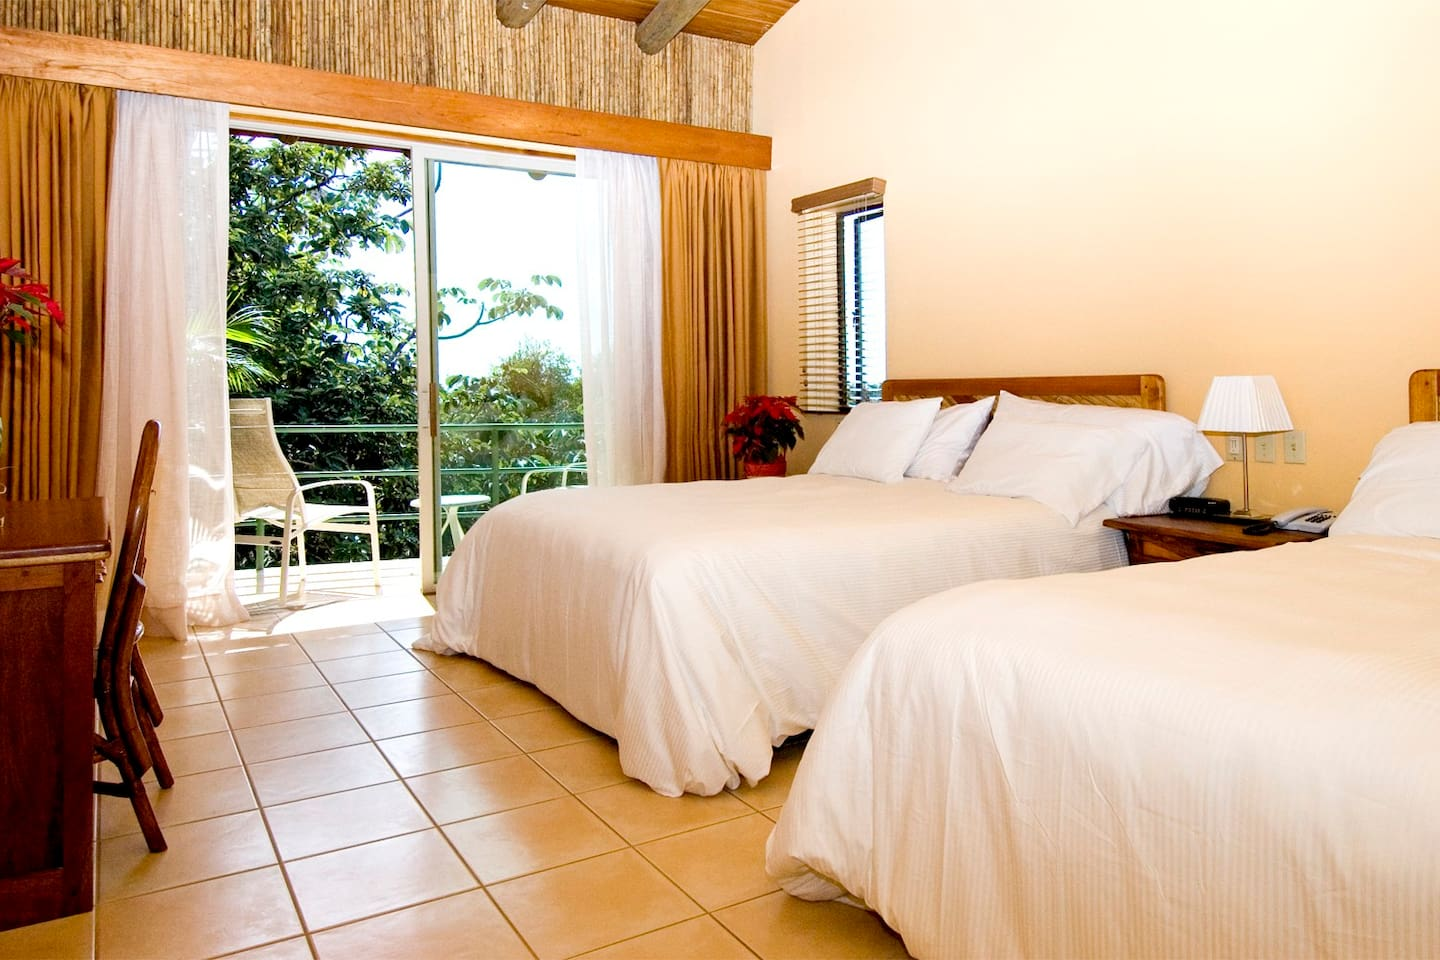 STD Room, King size or 2 queen beds.  Garden View. 4 people max Breakfast included.